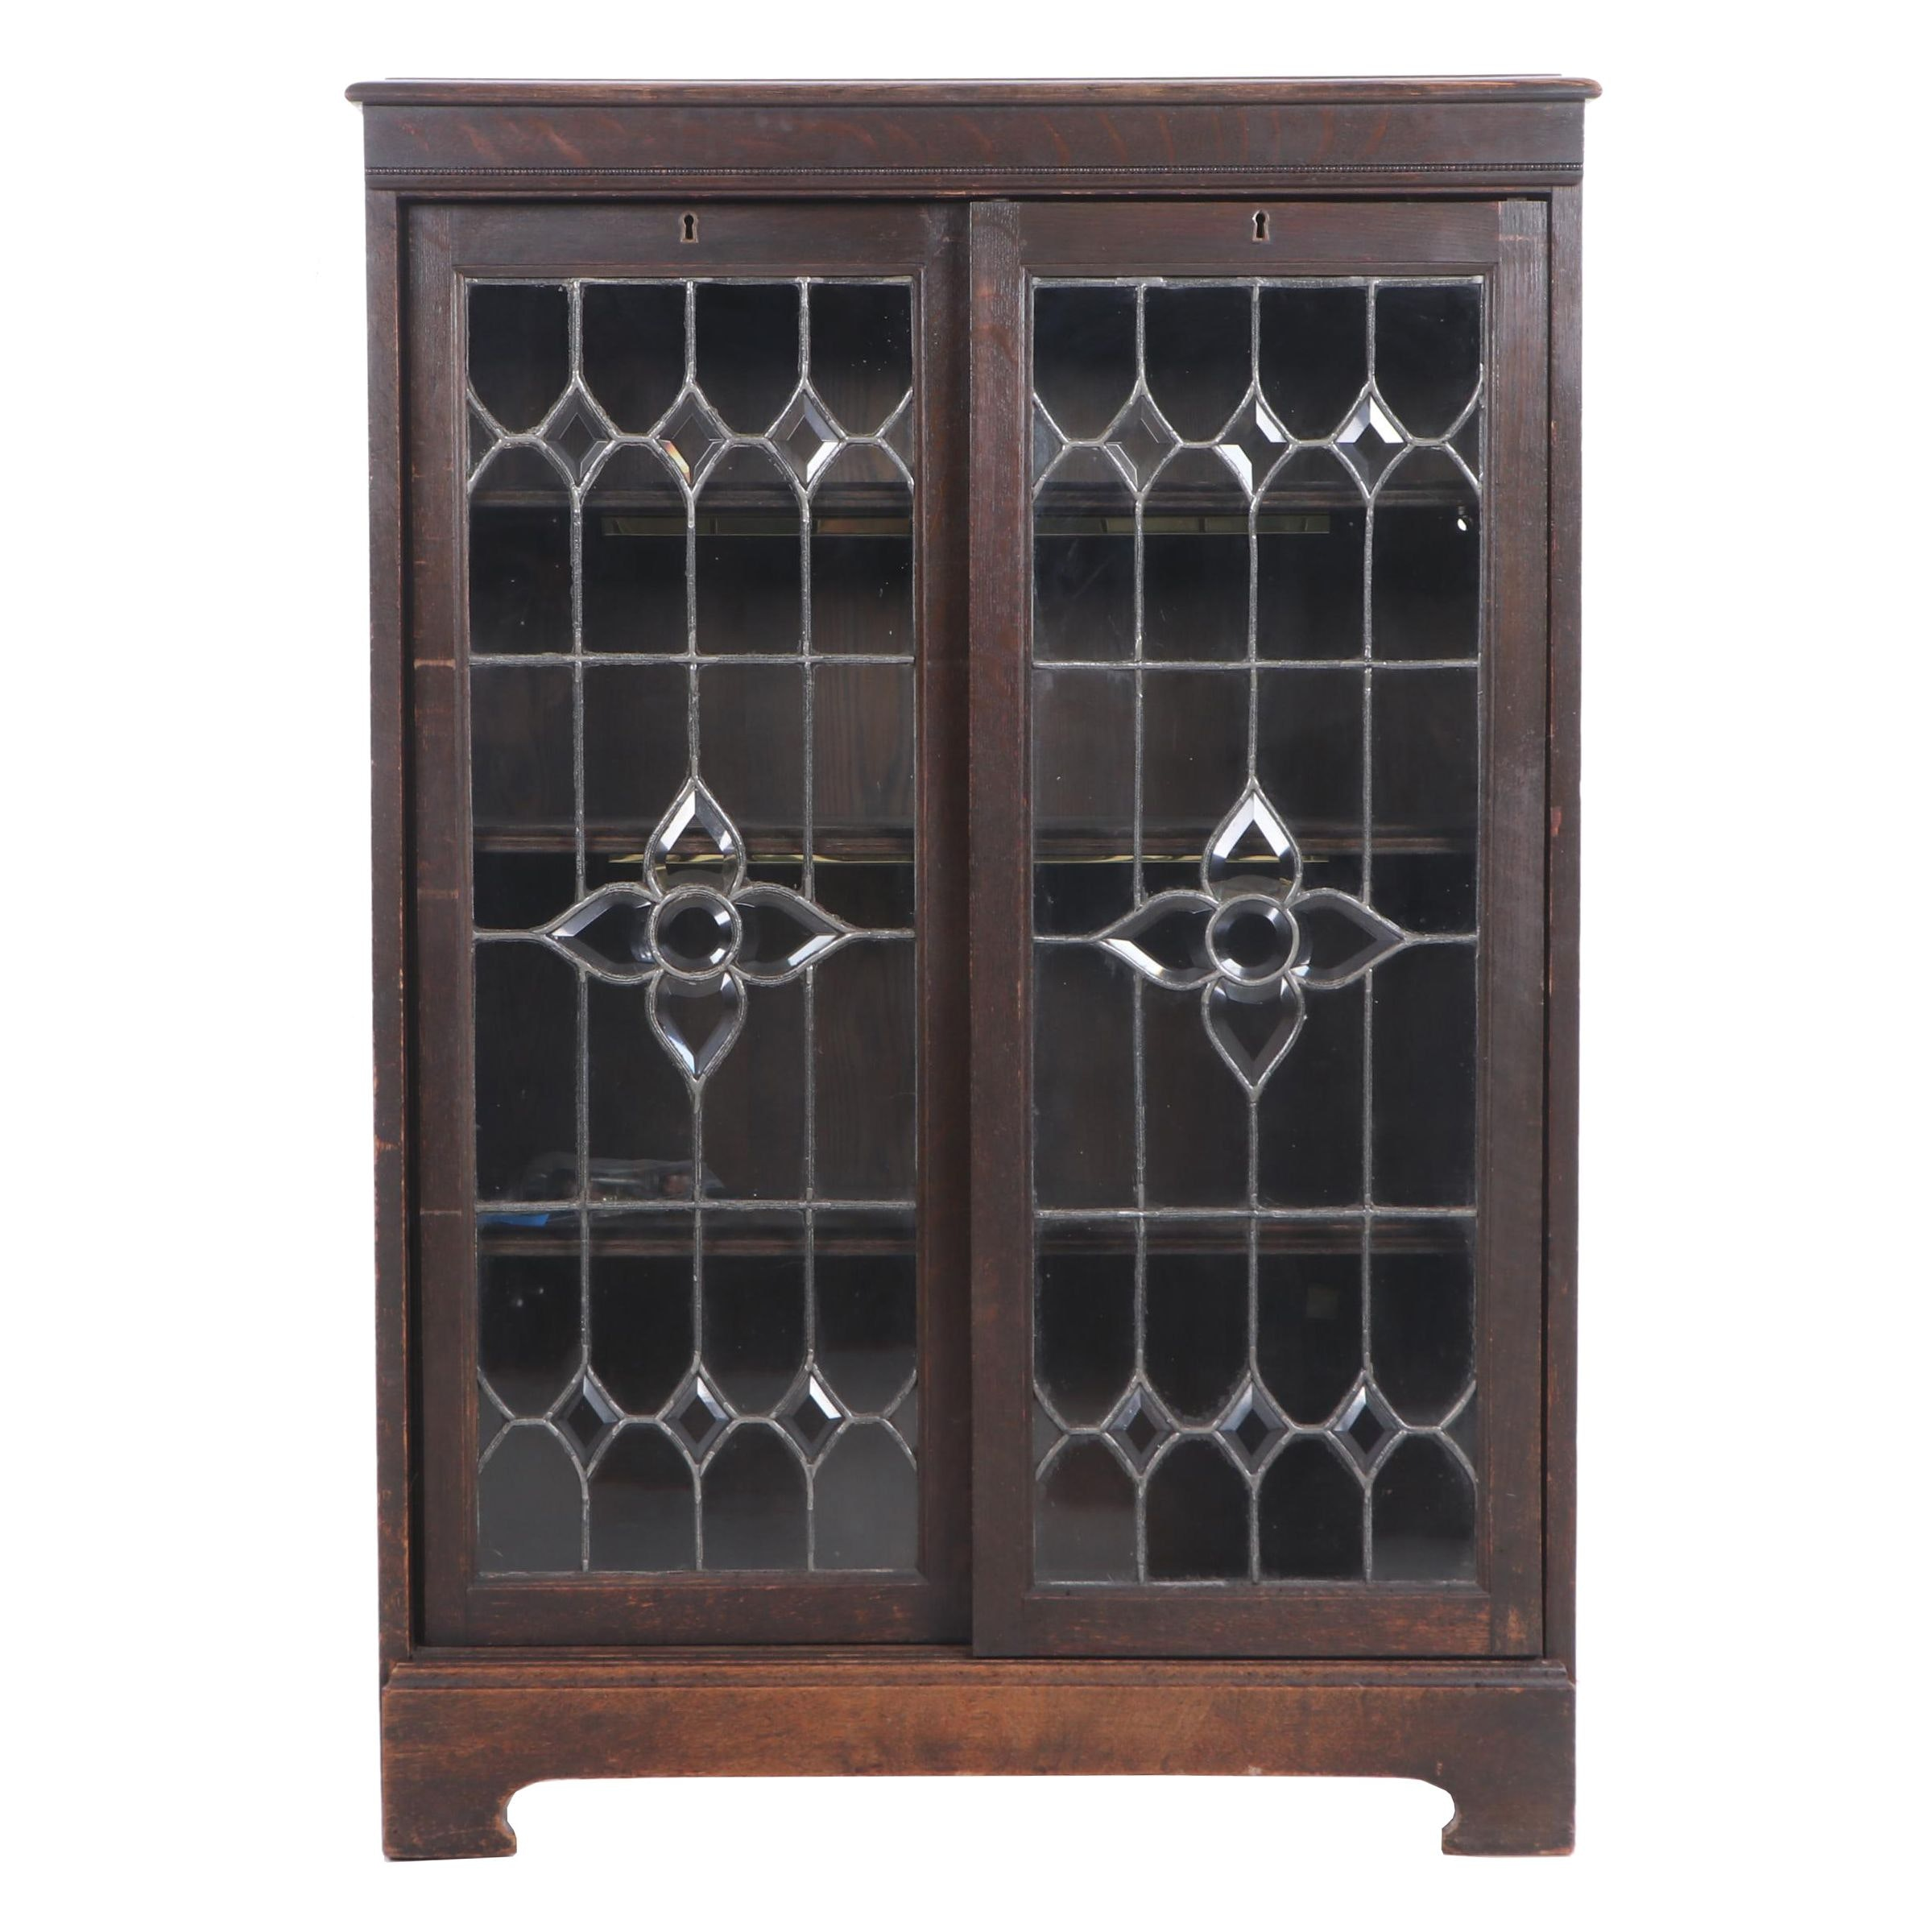 Arts and Crafts Oak Cabinet with Sliding, Leaded Glass Doors, Circa 1900